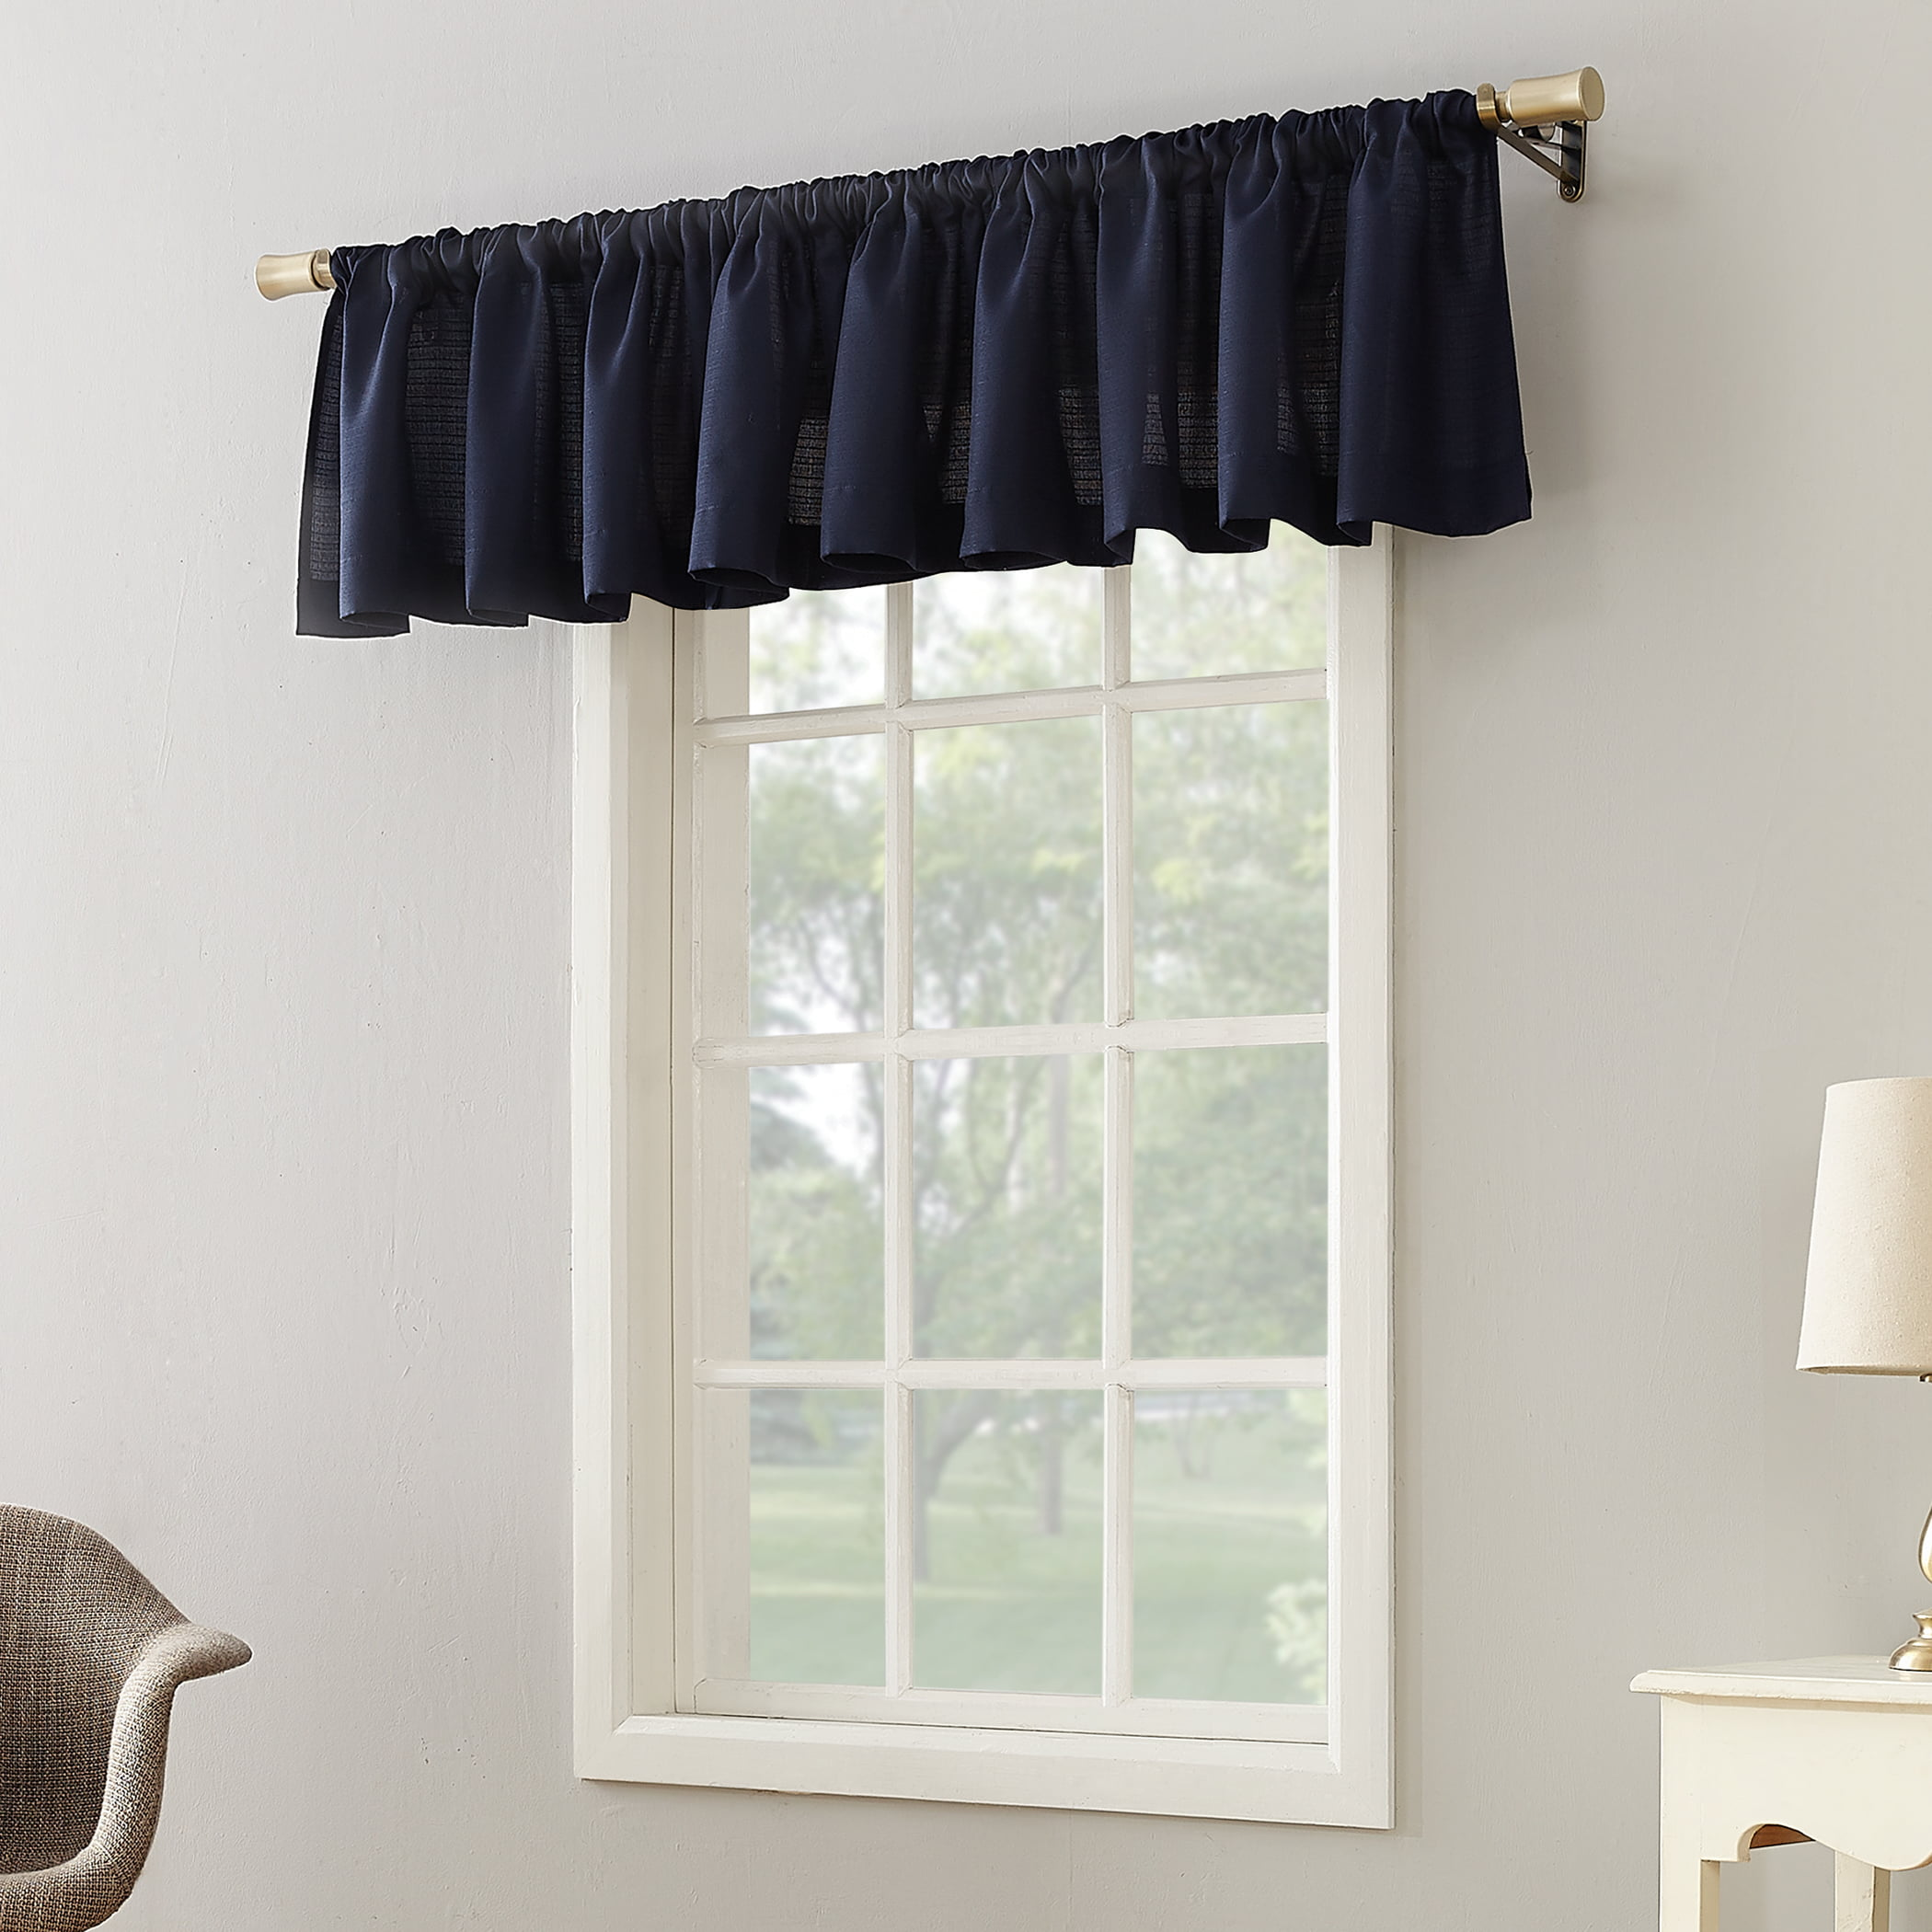 fascinating Solid Red Valances Part - 20: Mainstays Textured Solid Curtain Valance - Walmart.com